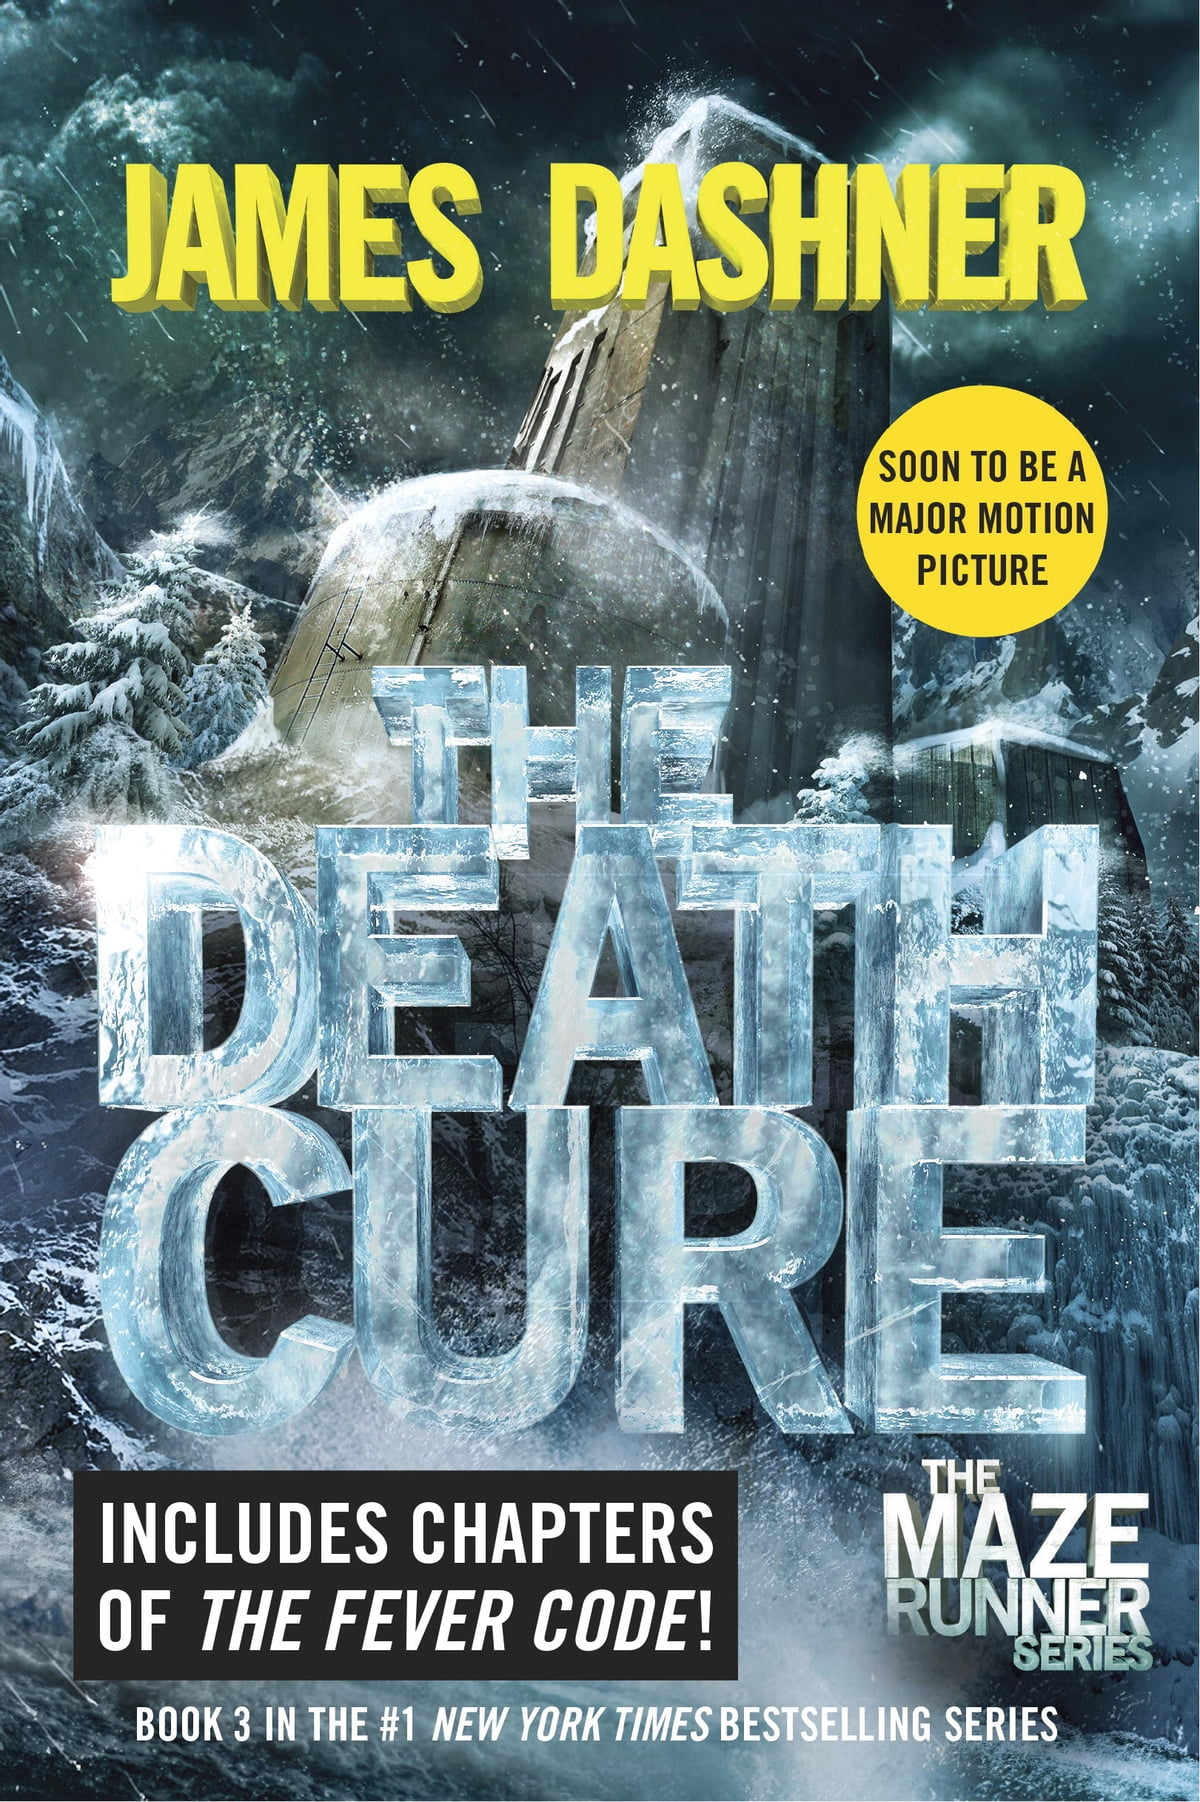 The fever code ebook by james dashner 9780553513110 rakuten kobo the death cure ebook by james dashner fandeluxe Ebook collections